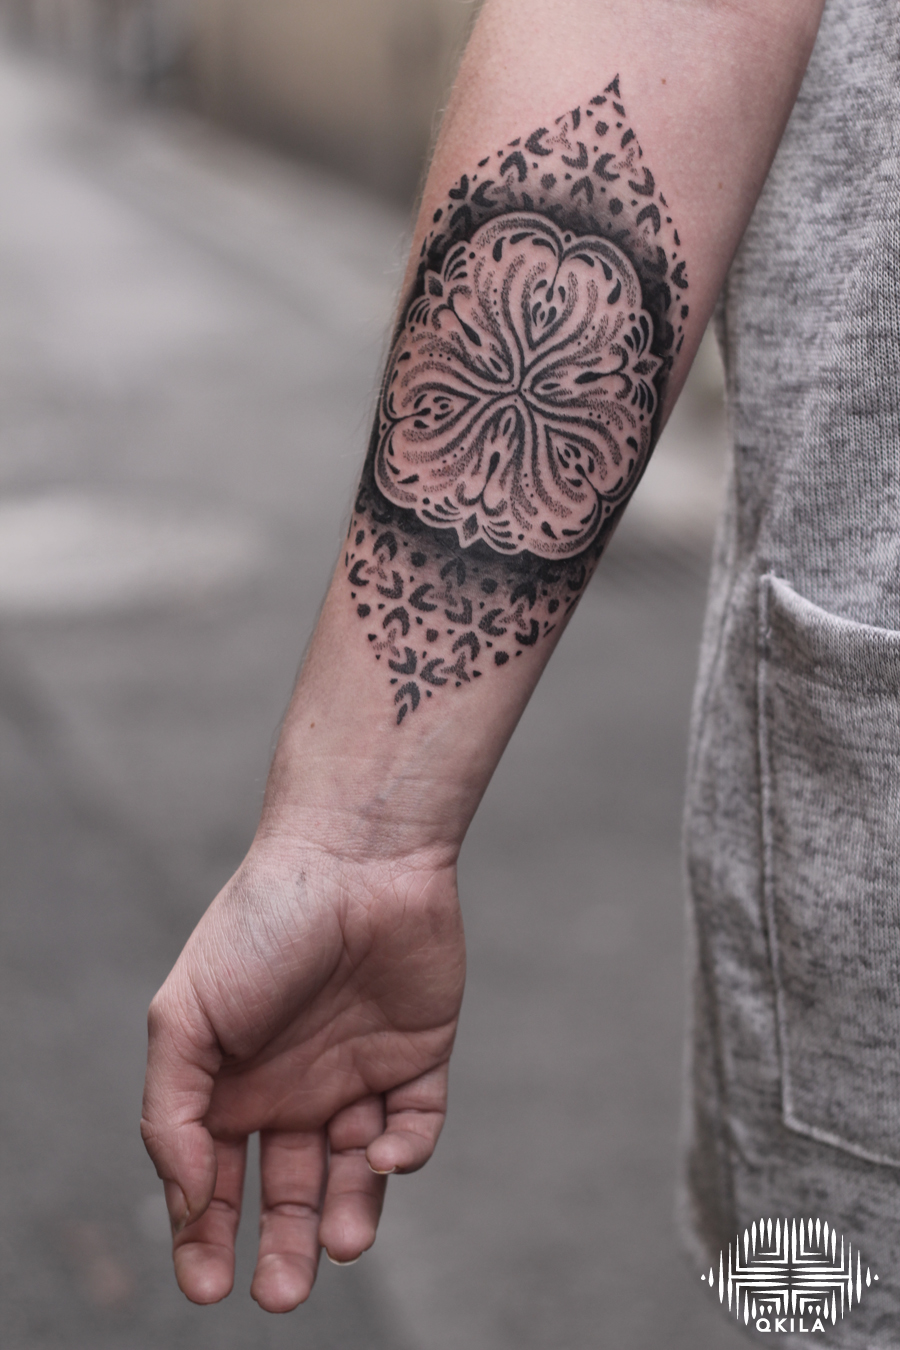 suisse,patterns tattoo,op art, sleeves tattoo, dotwork tattoo, qkila,geometric tattoo, ethnique tattoo, les tatoués anonymes, nimes